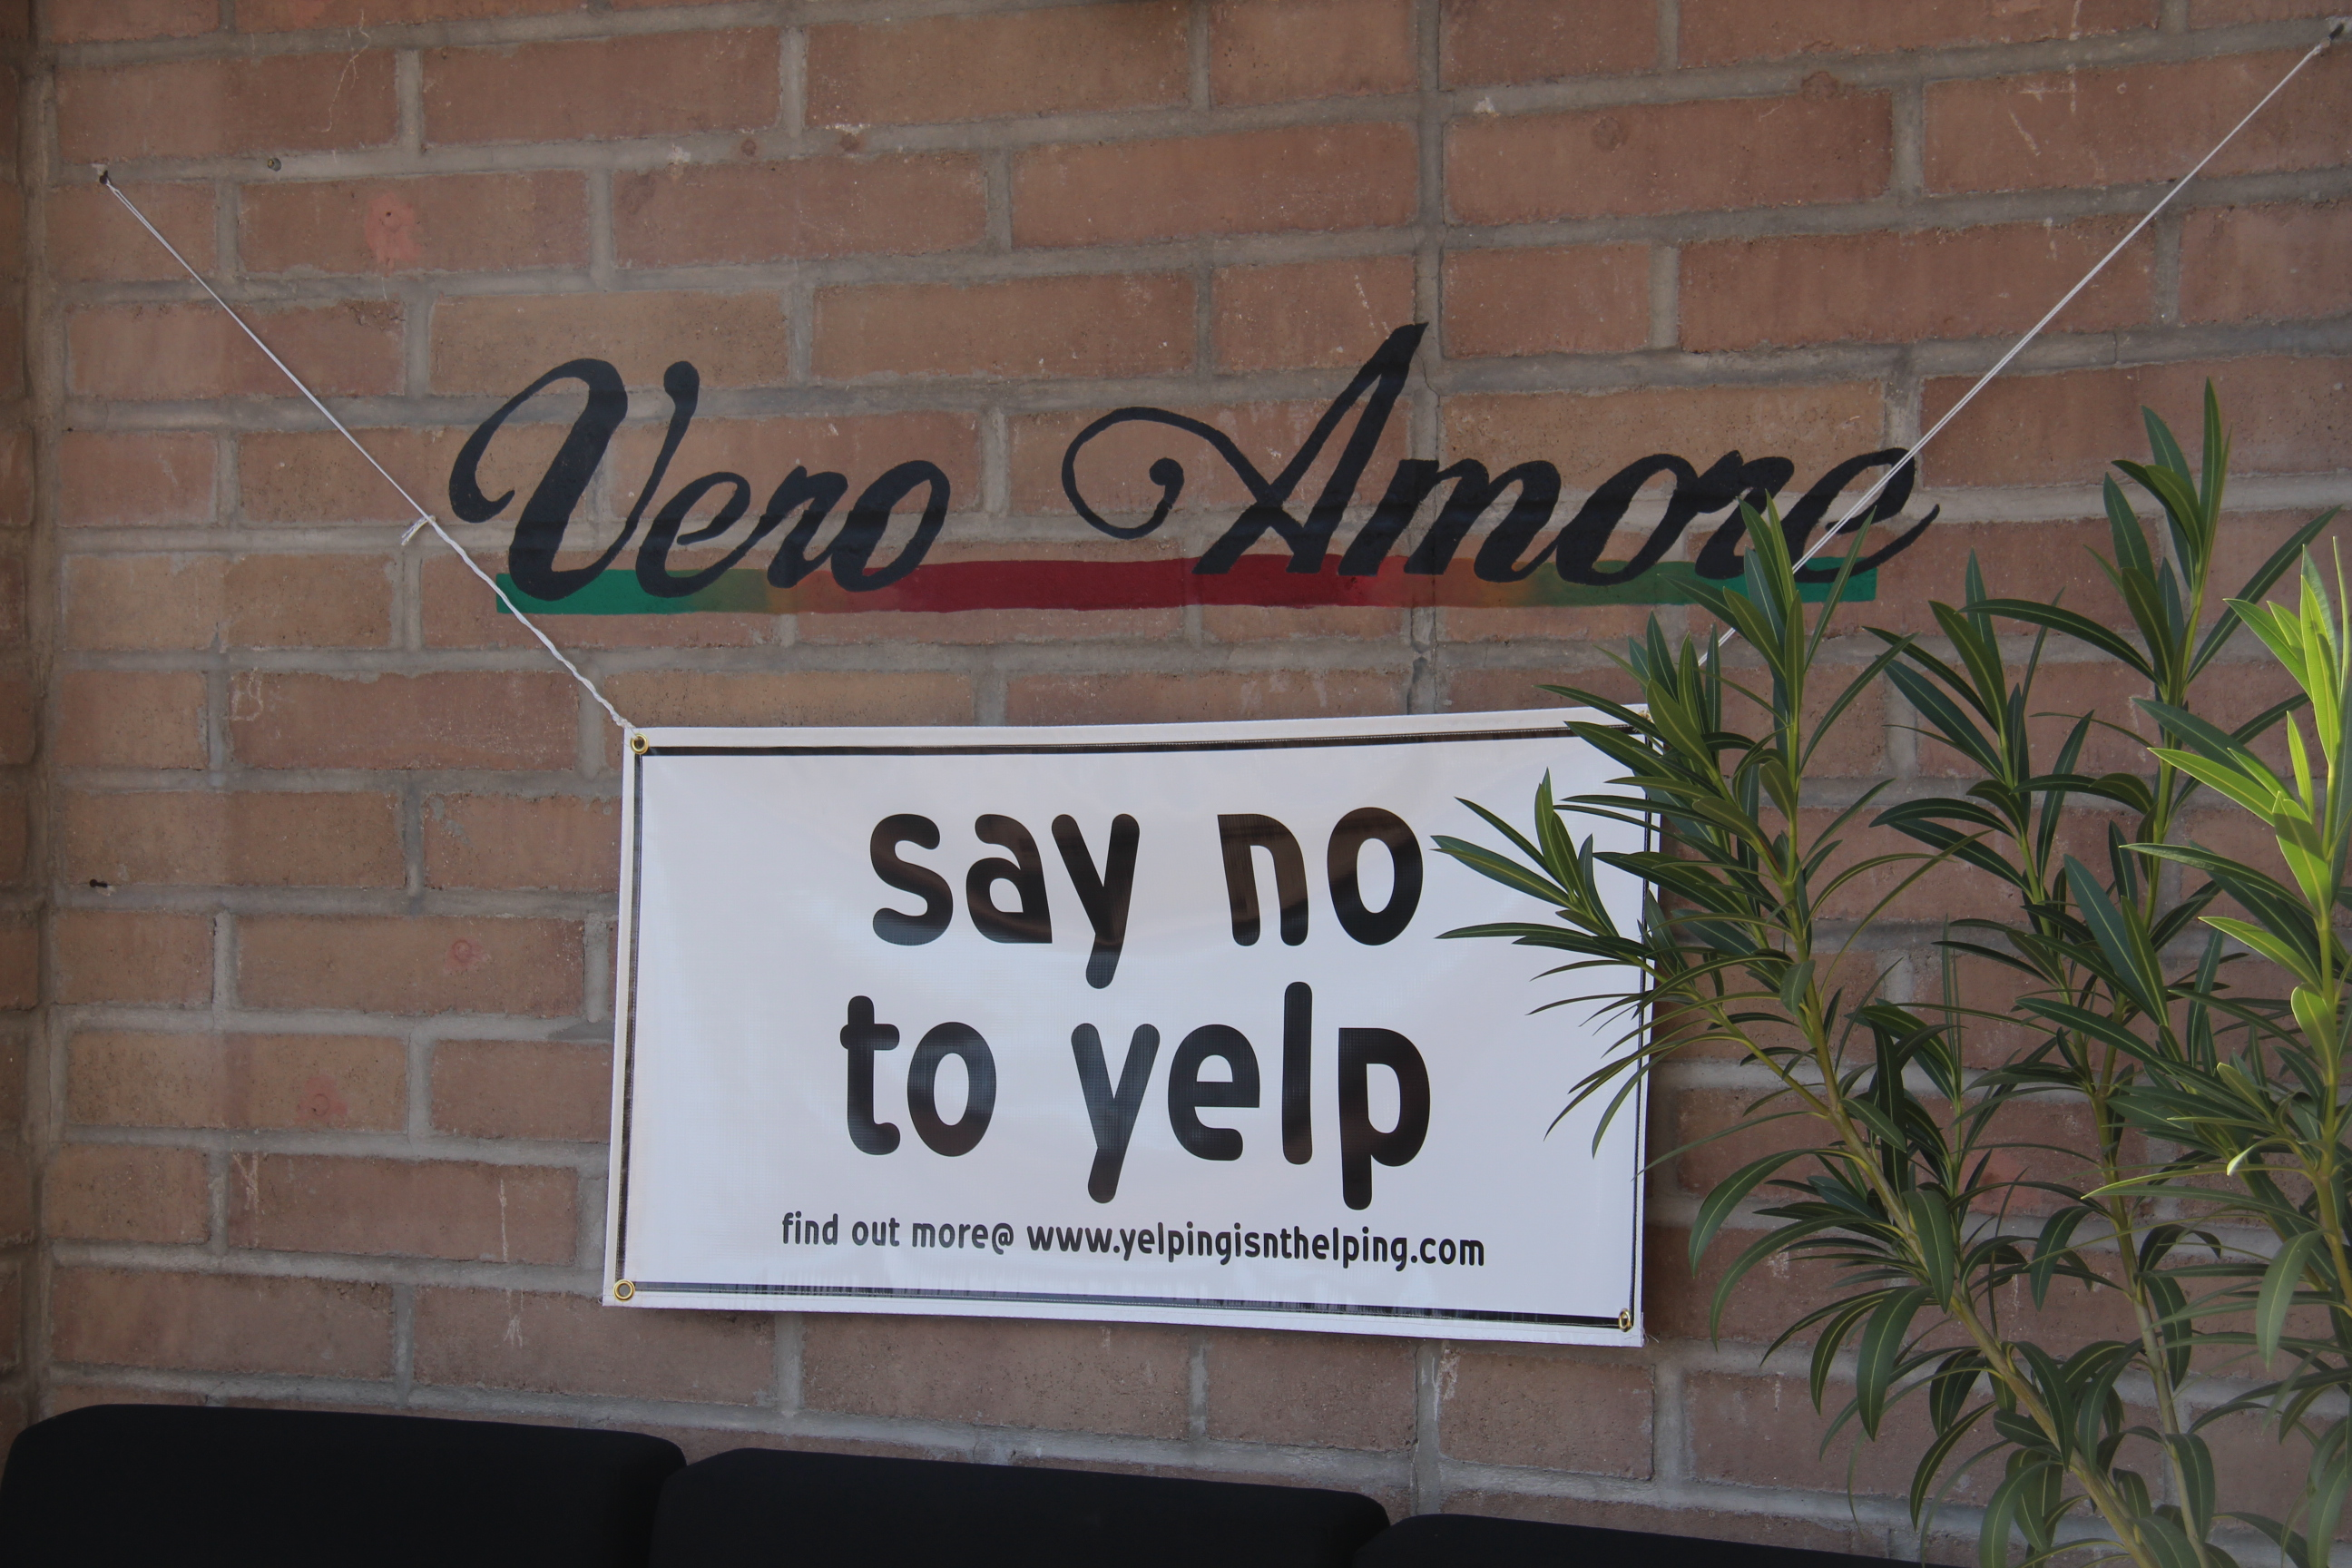 say no to yelp sign (Sarah Pelfini/Arizona Sonoran News)